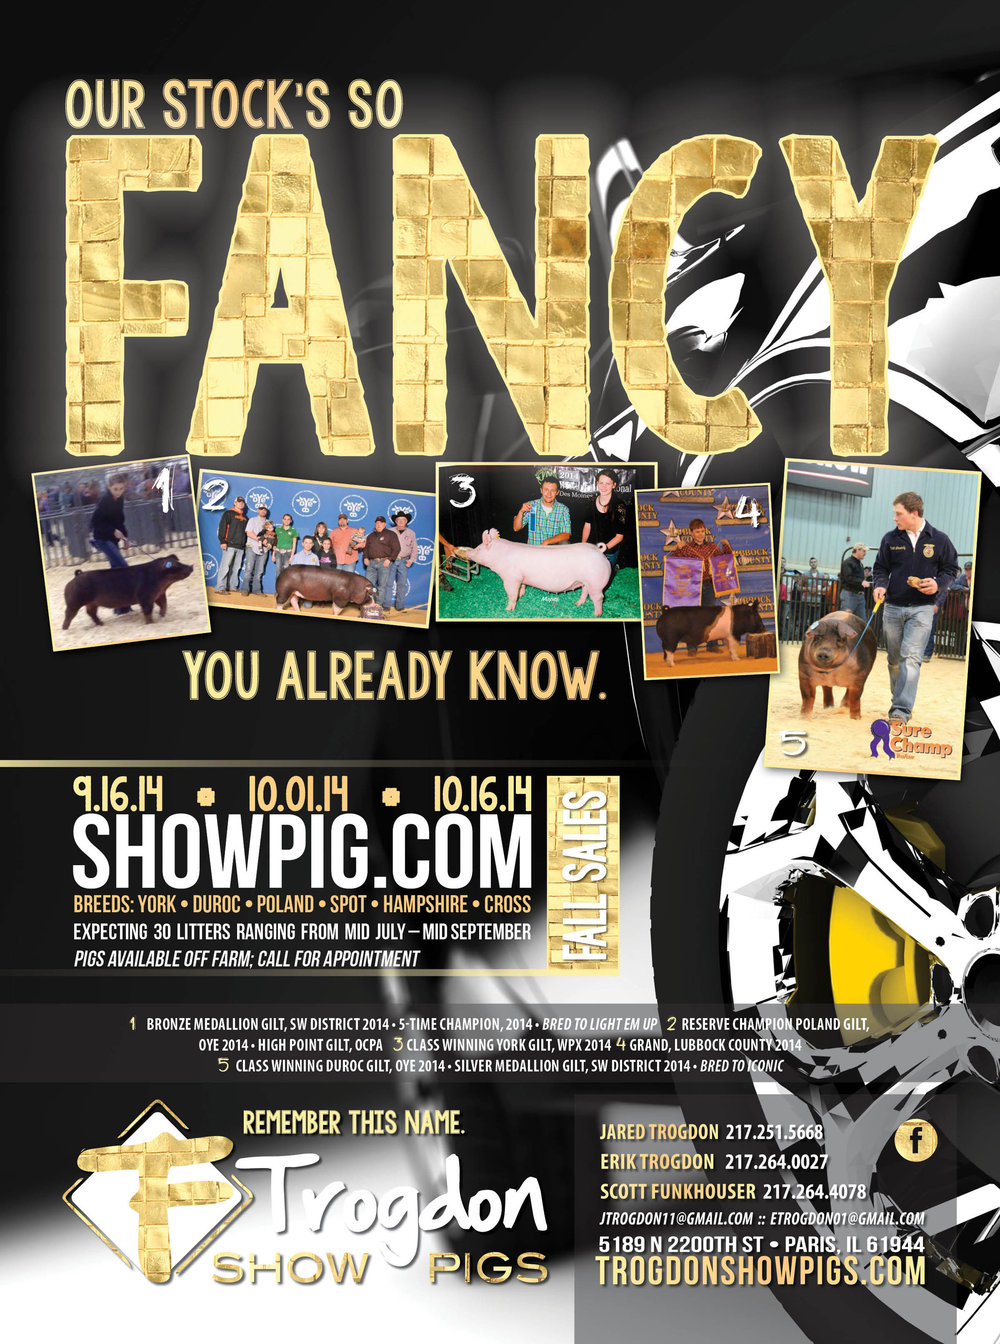 Trogdon-Show-Pigs_f14_fancy-advertisement.jpg